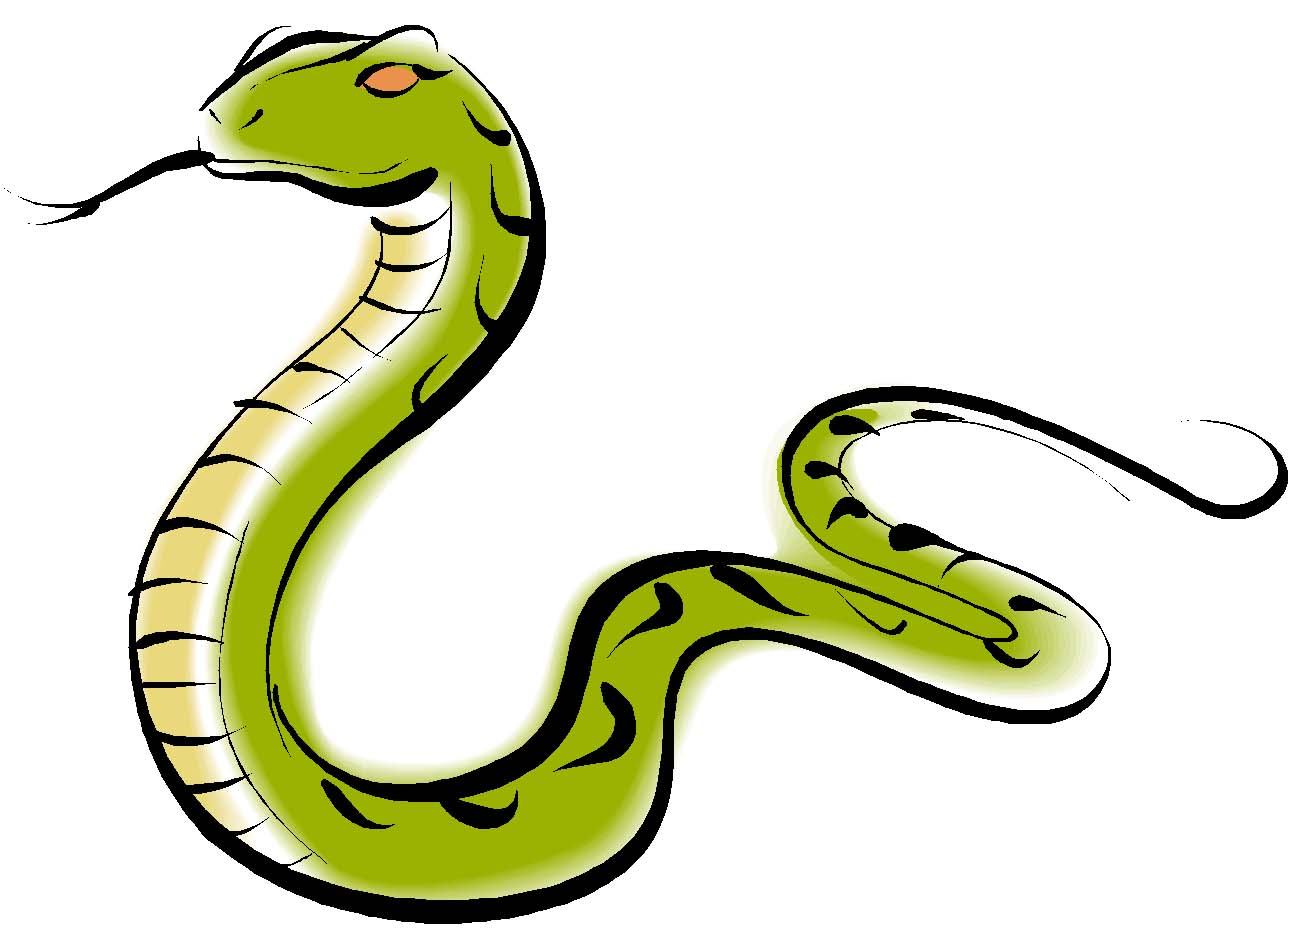 Snake cliparts.